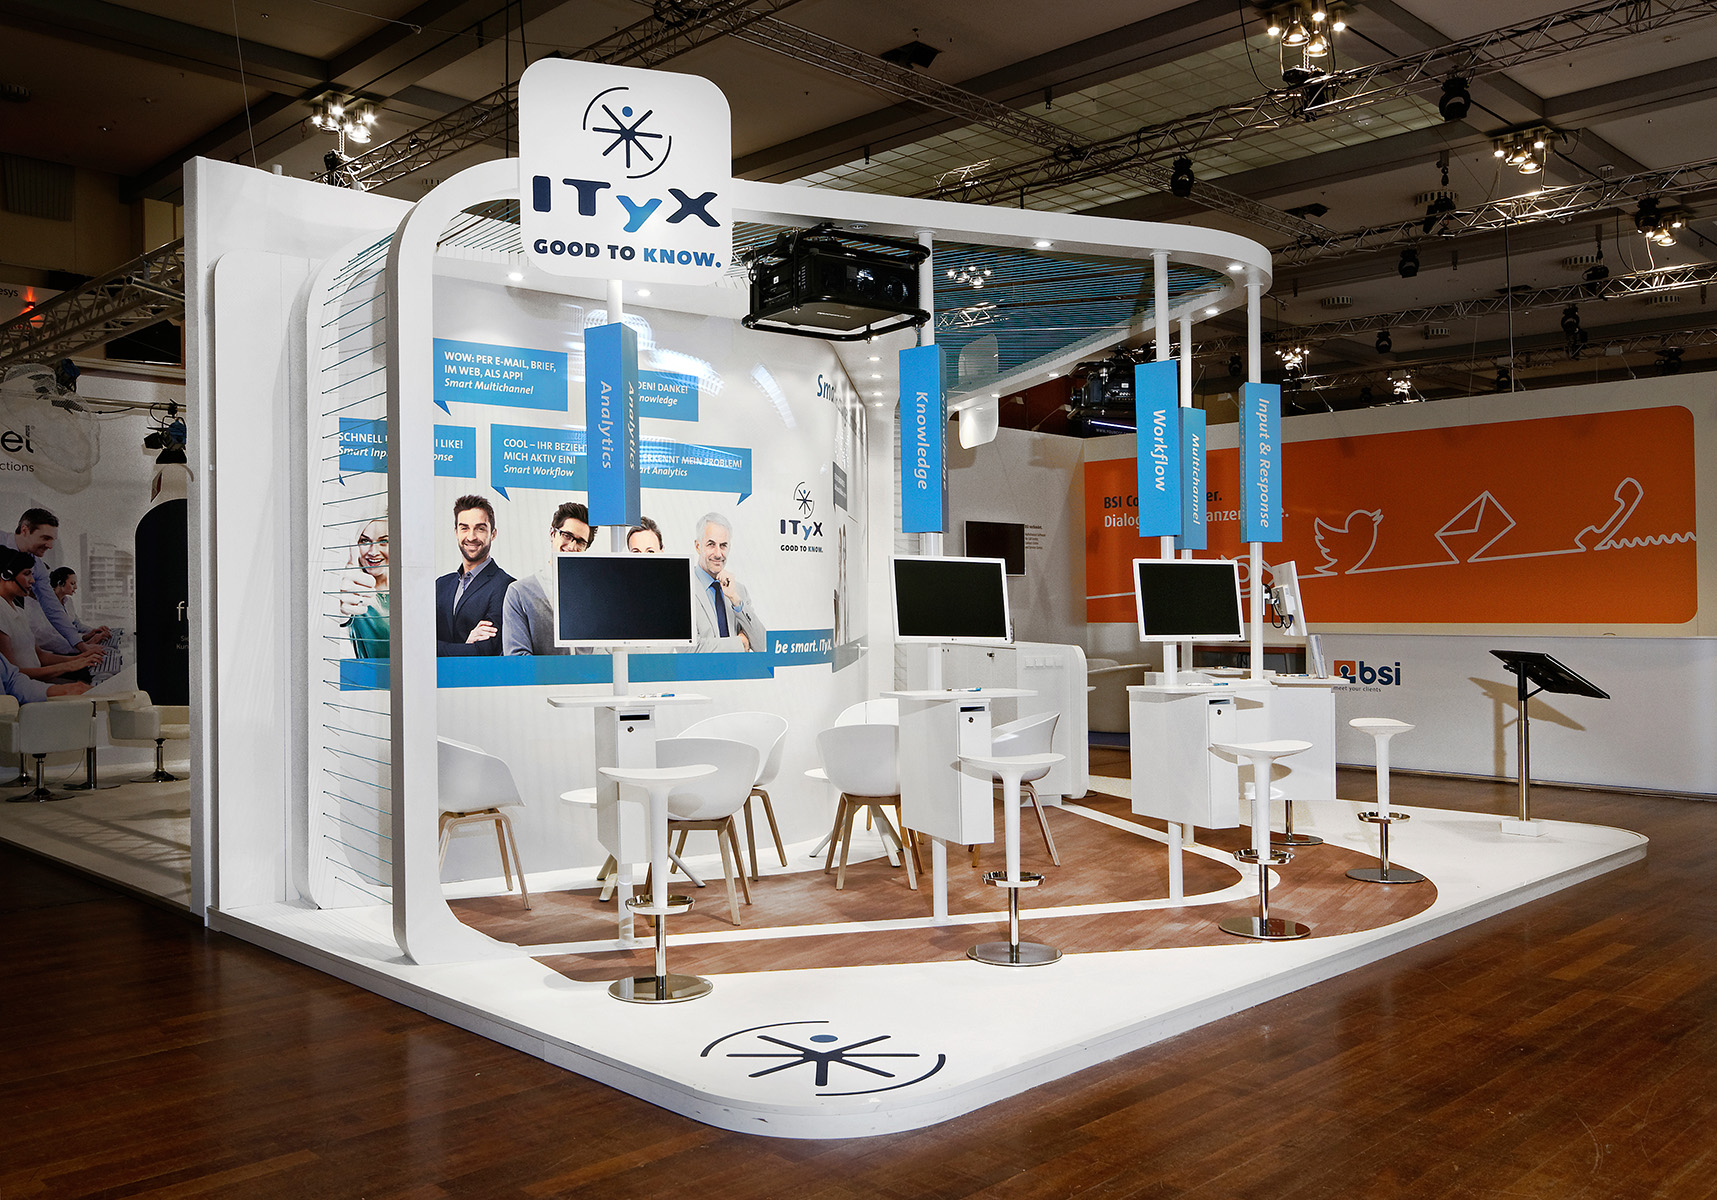 ITYX_Messestand_CCW_Berlin (3)